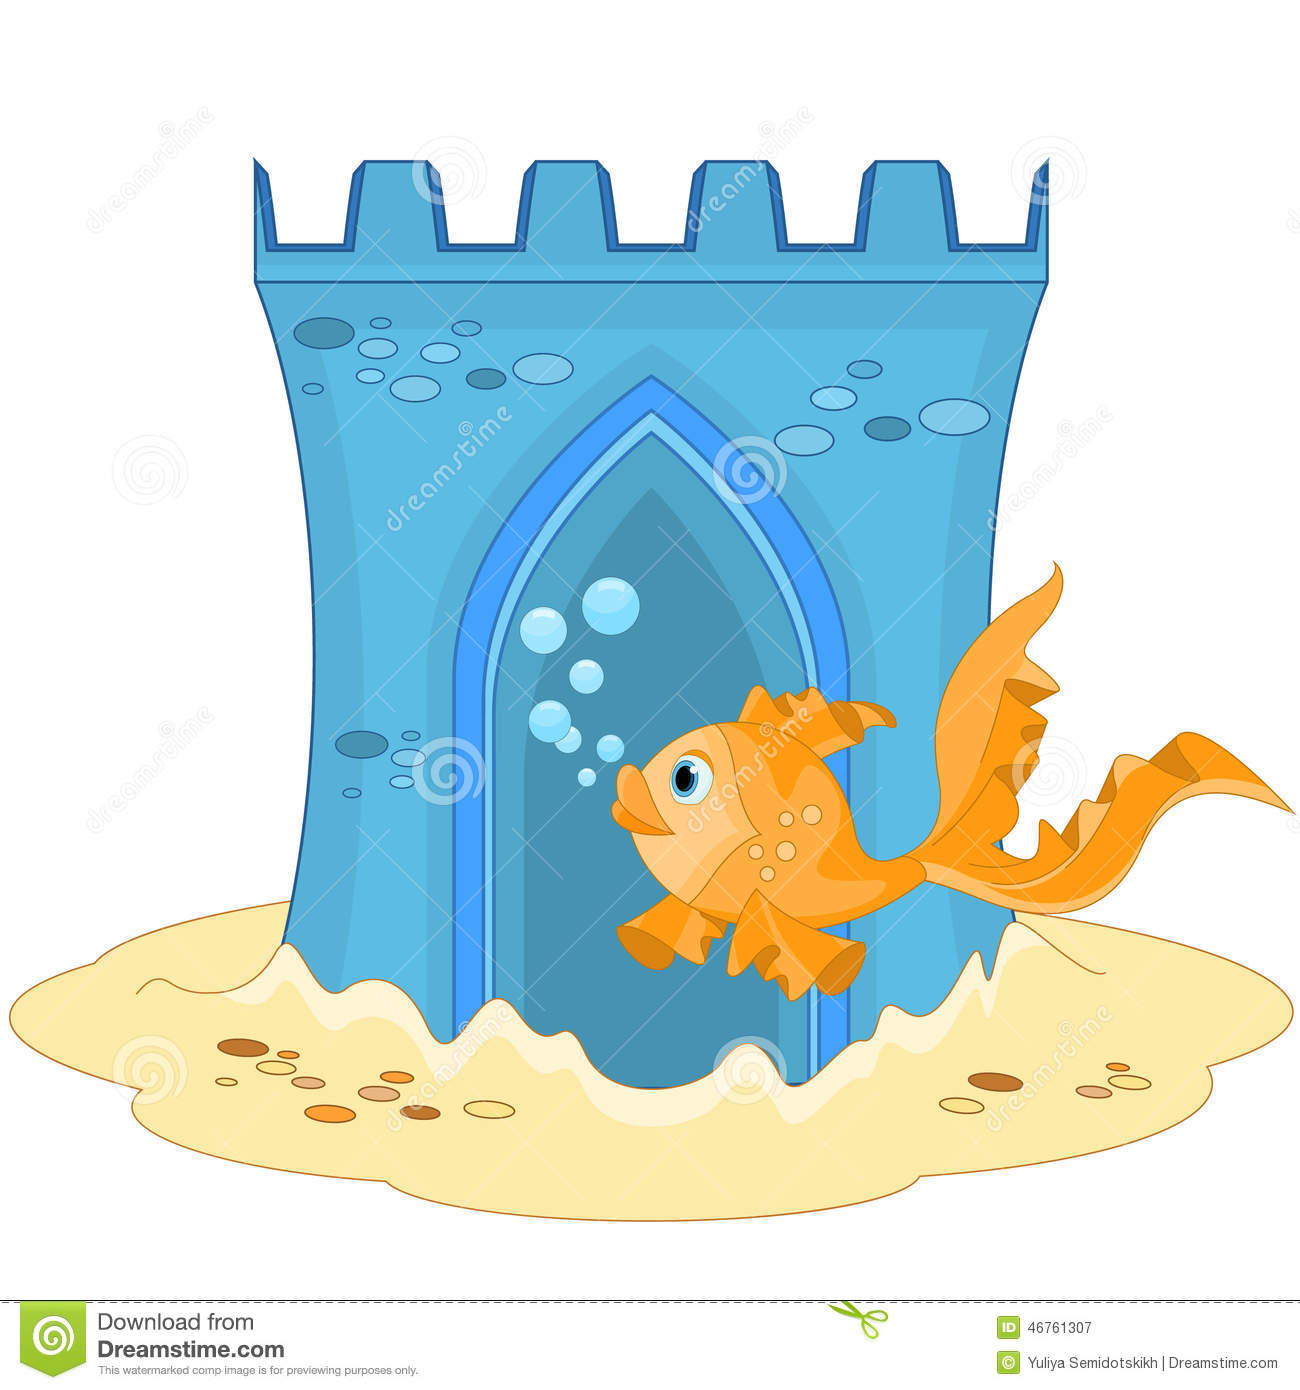 Underwater Castle And Gold Fish Stock Vector - Image: 46761307